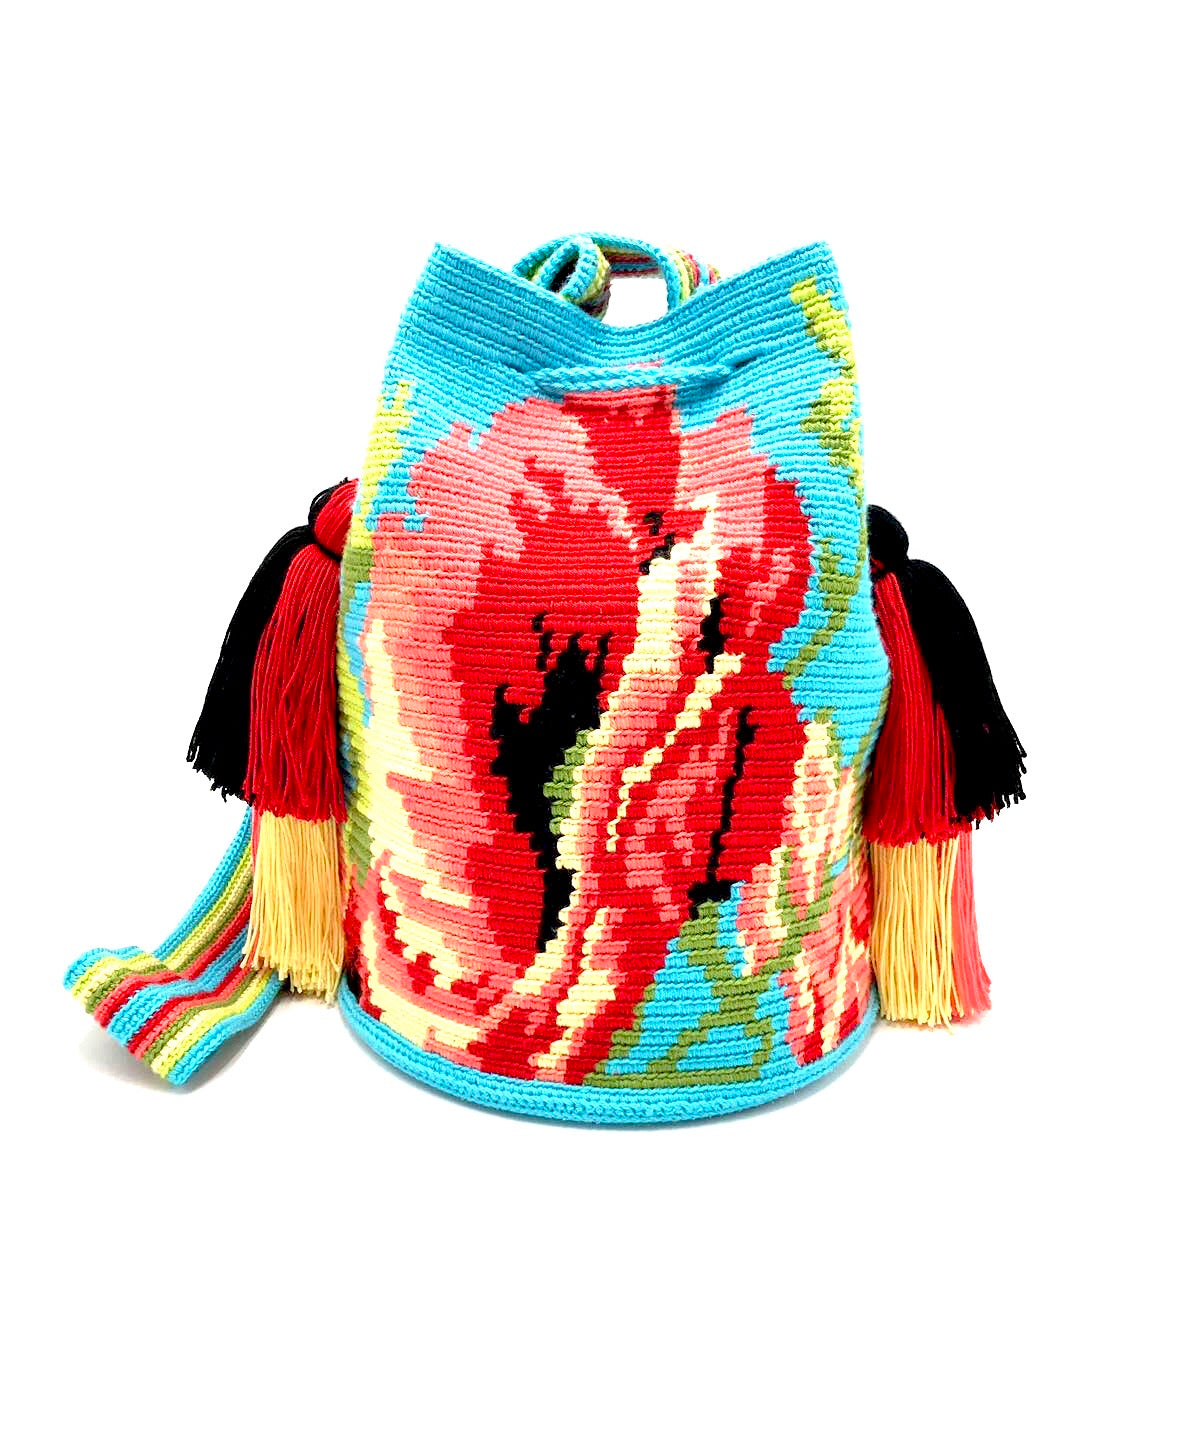 Poppy Flower bag, turquoise body and quadruple tassels.